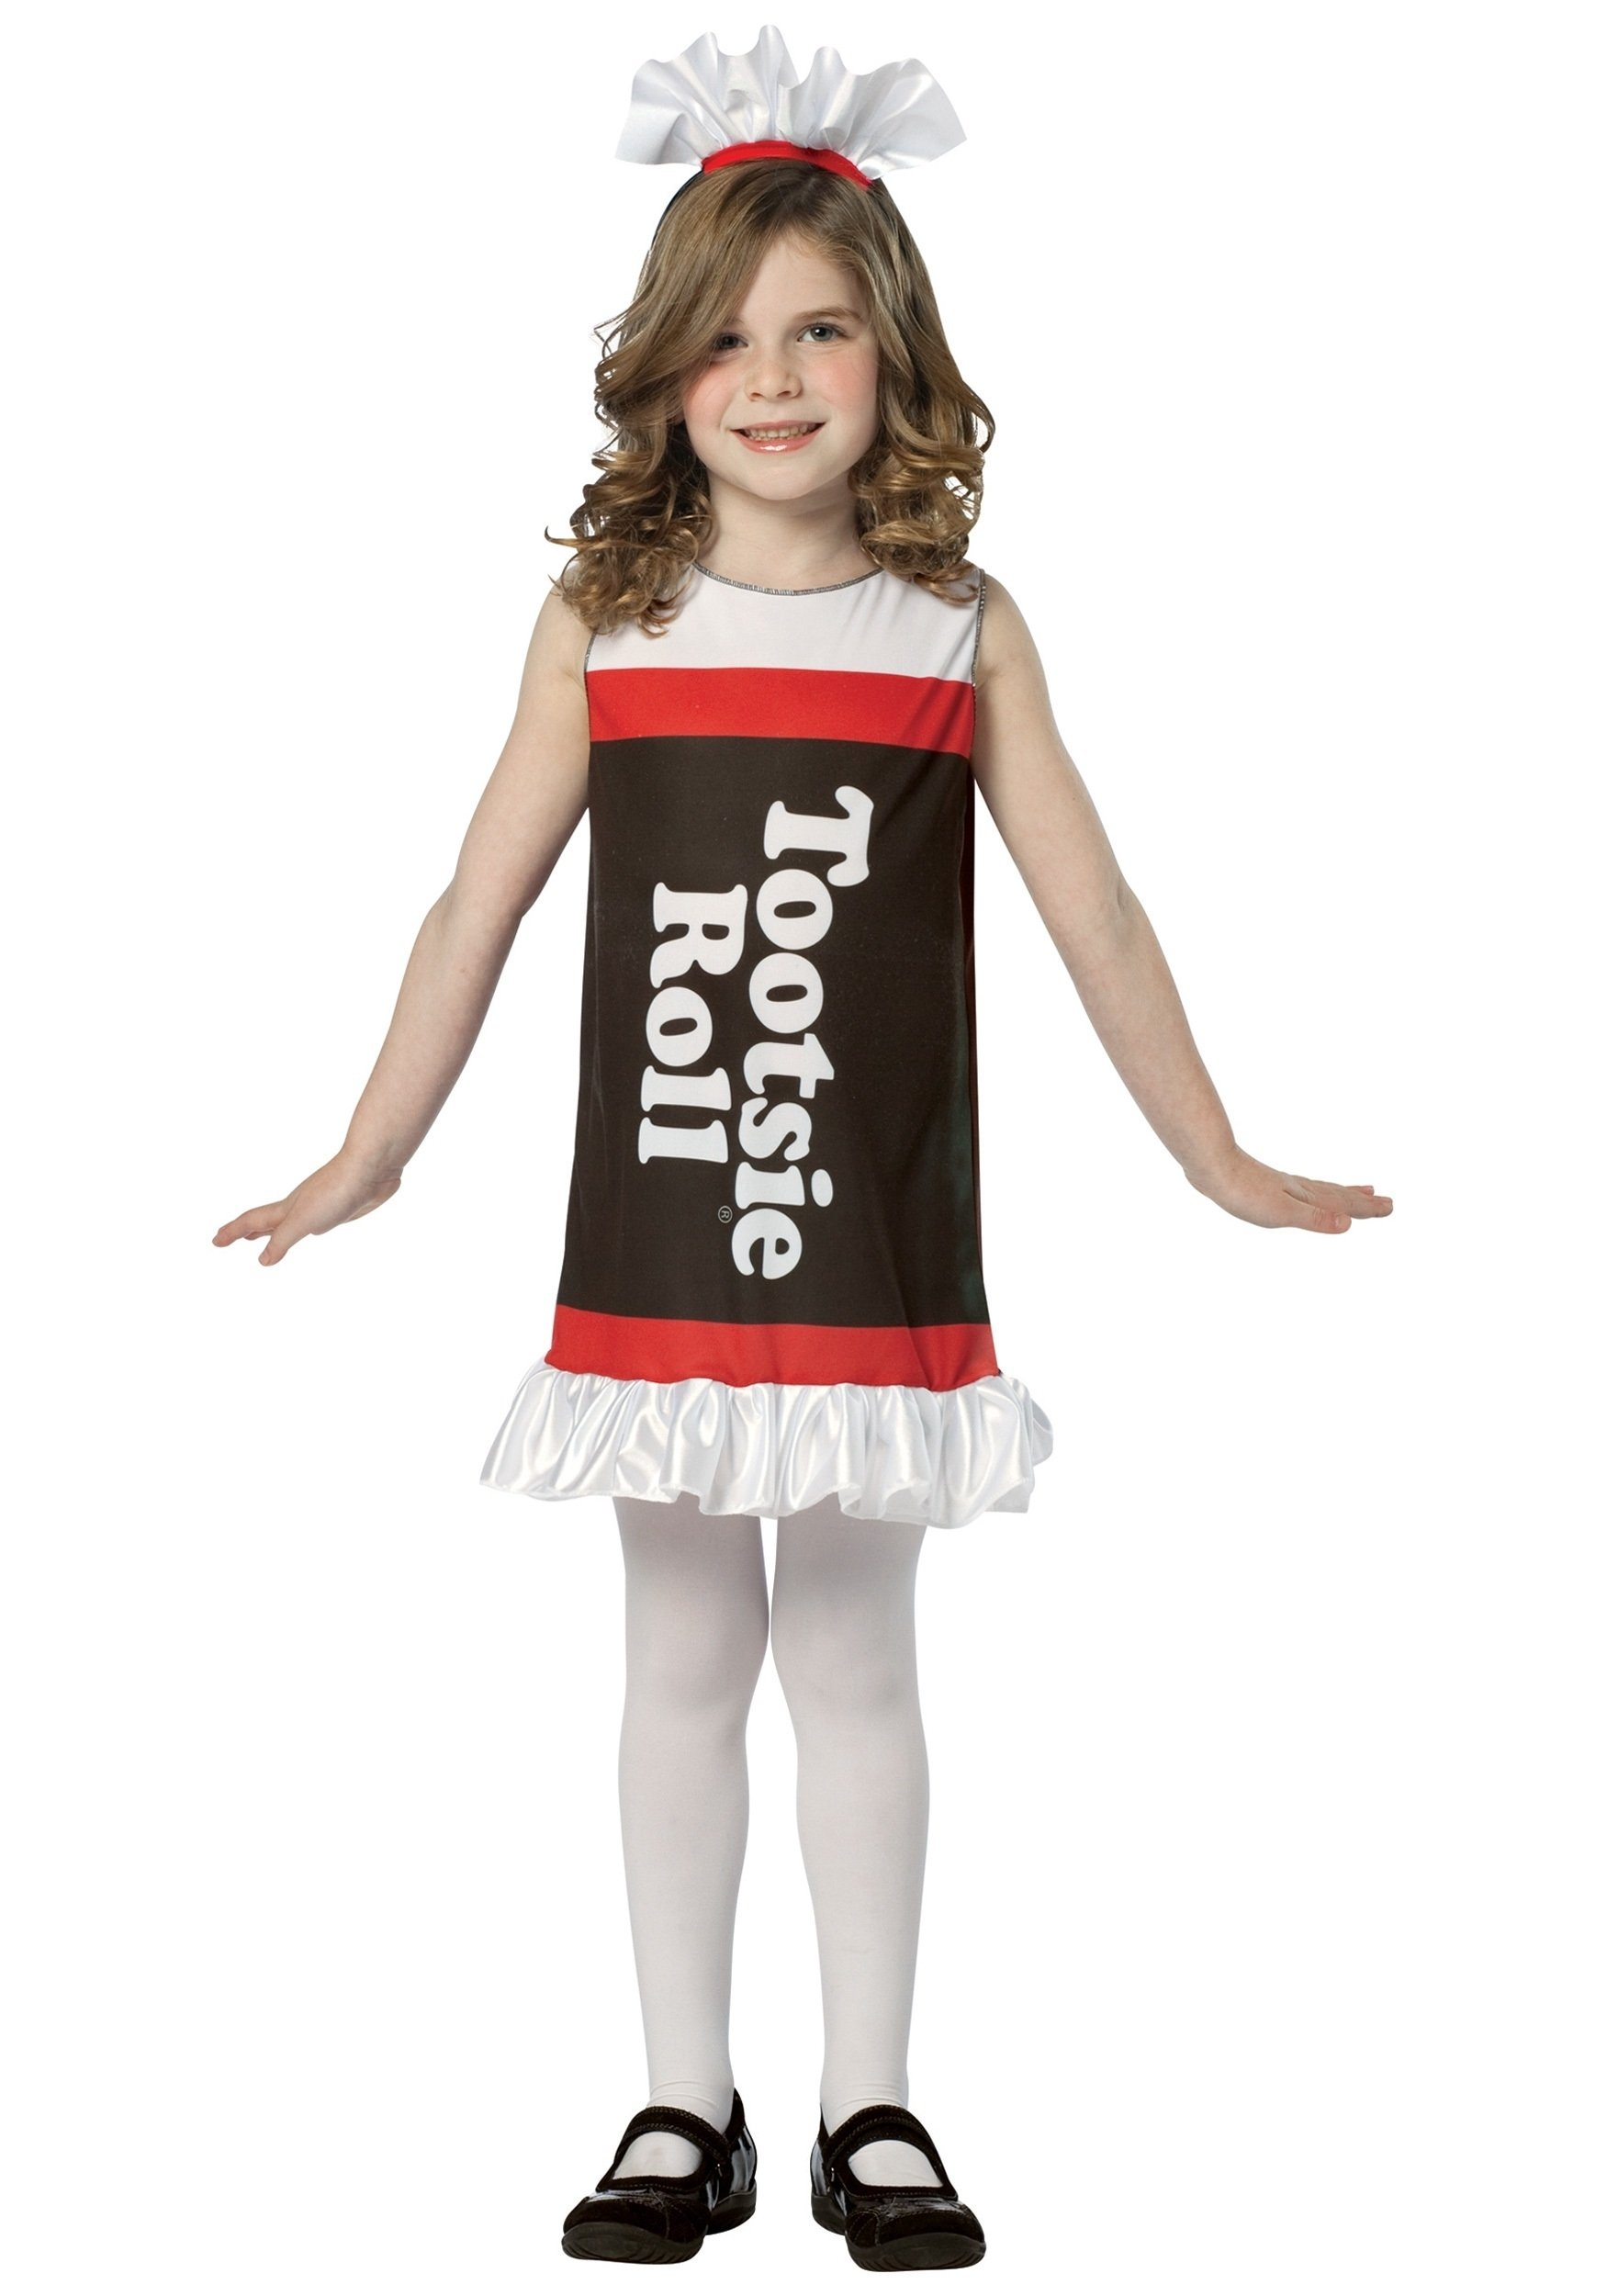 10 beautiful cute girl halloween costume ideas girls tootsie roll dress 5 sc 1 st unique ideas 2018